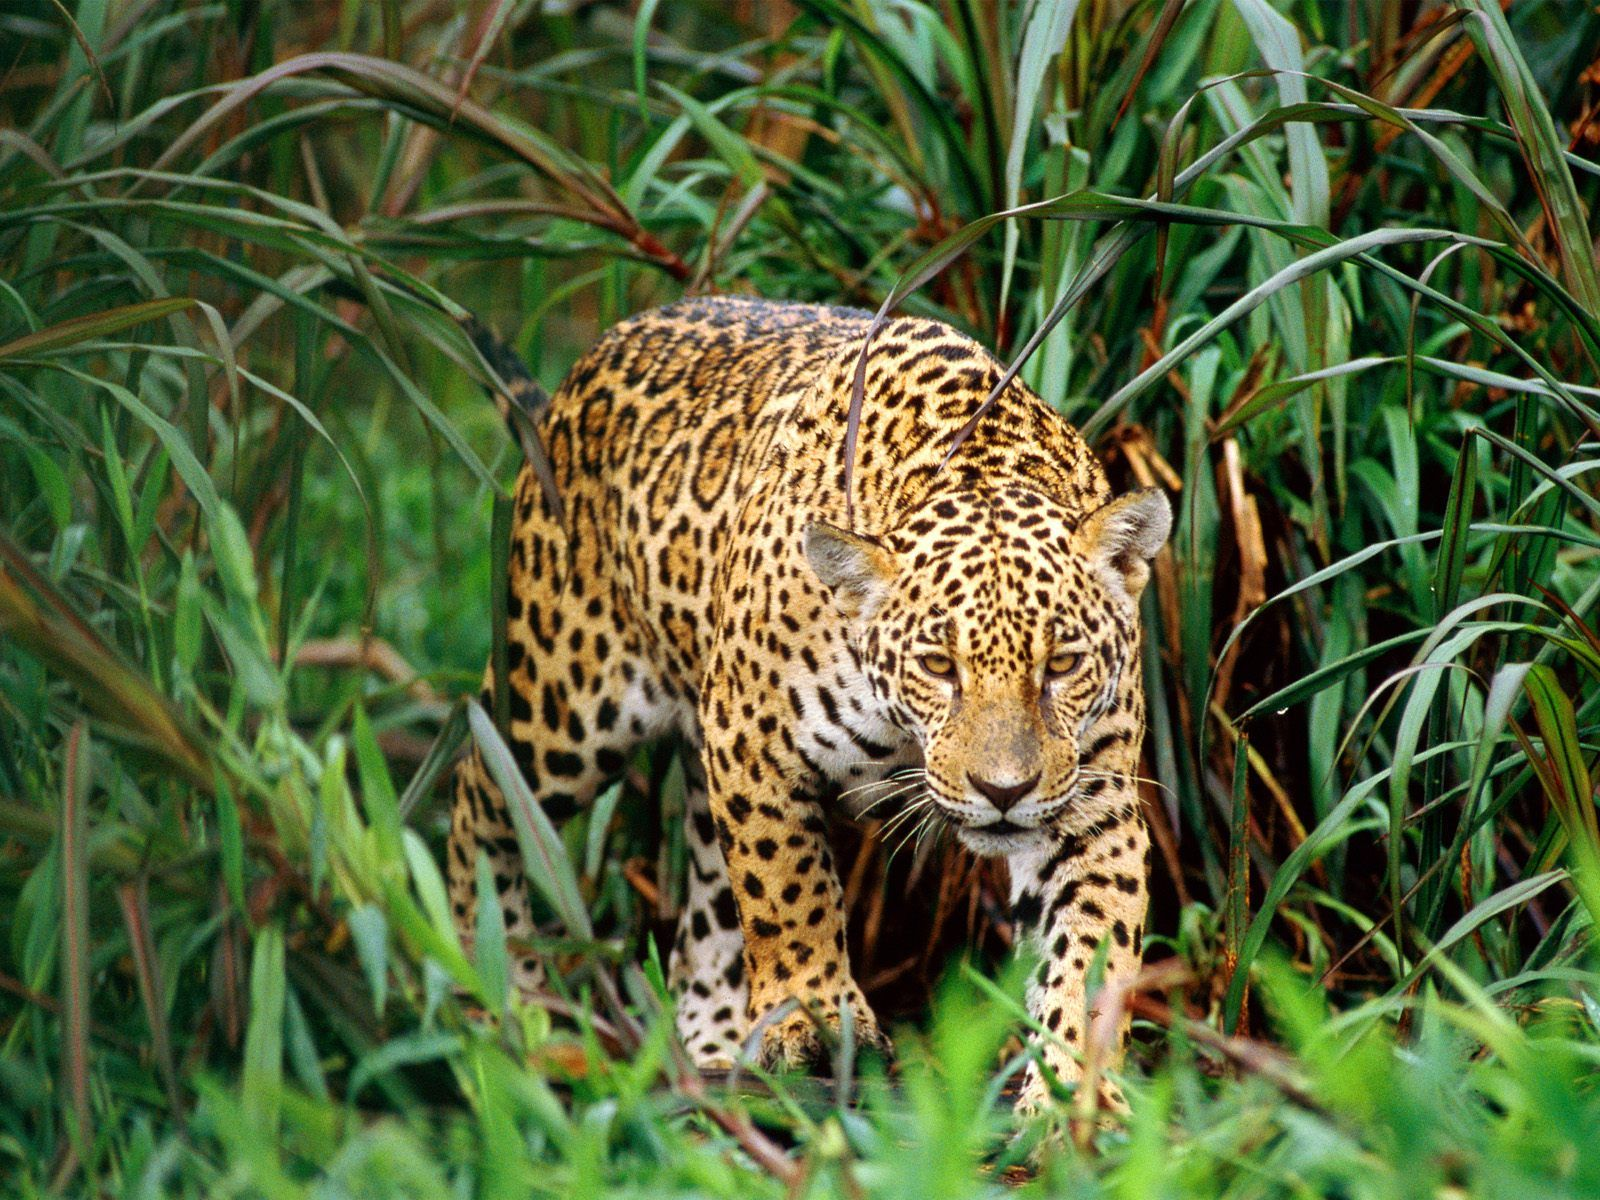 This Wild Cat Is In Danger Due To The Rapid Rate Of Rainforest Clearing Every Year Tracts Of Land The Size Of Great Rainforest Animals Big Animals Wild Cats